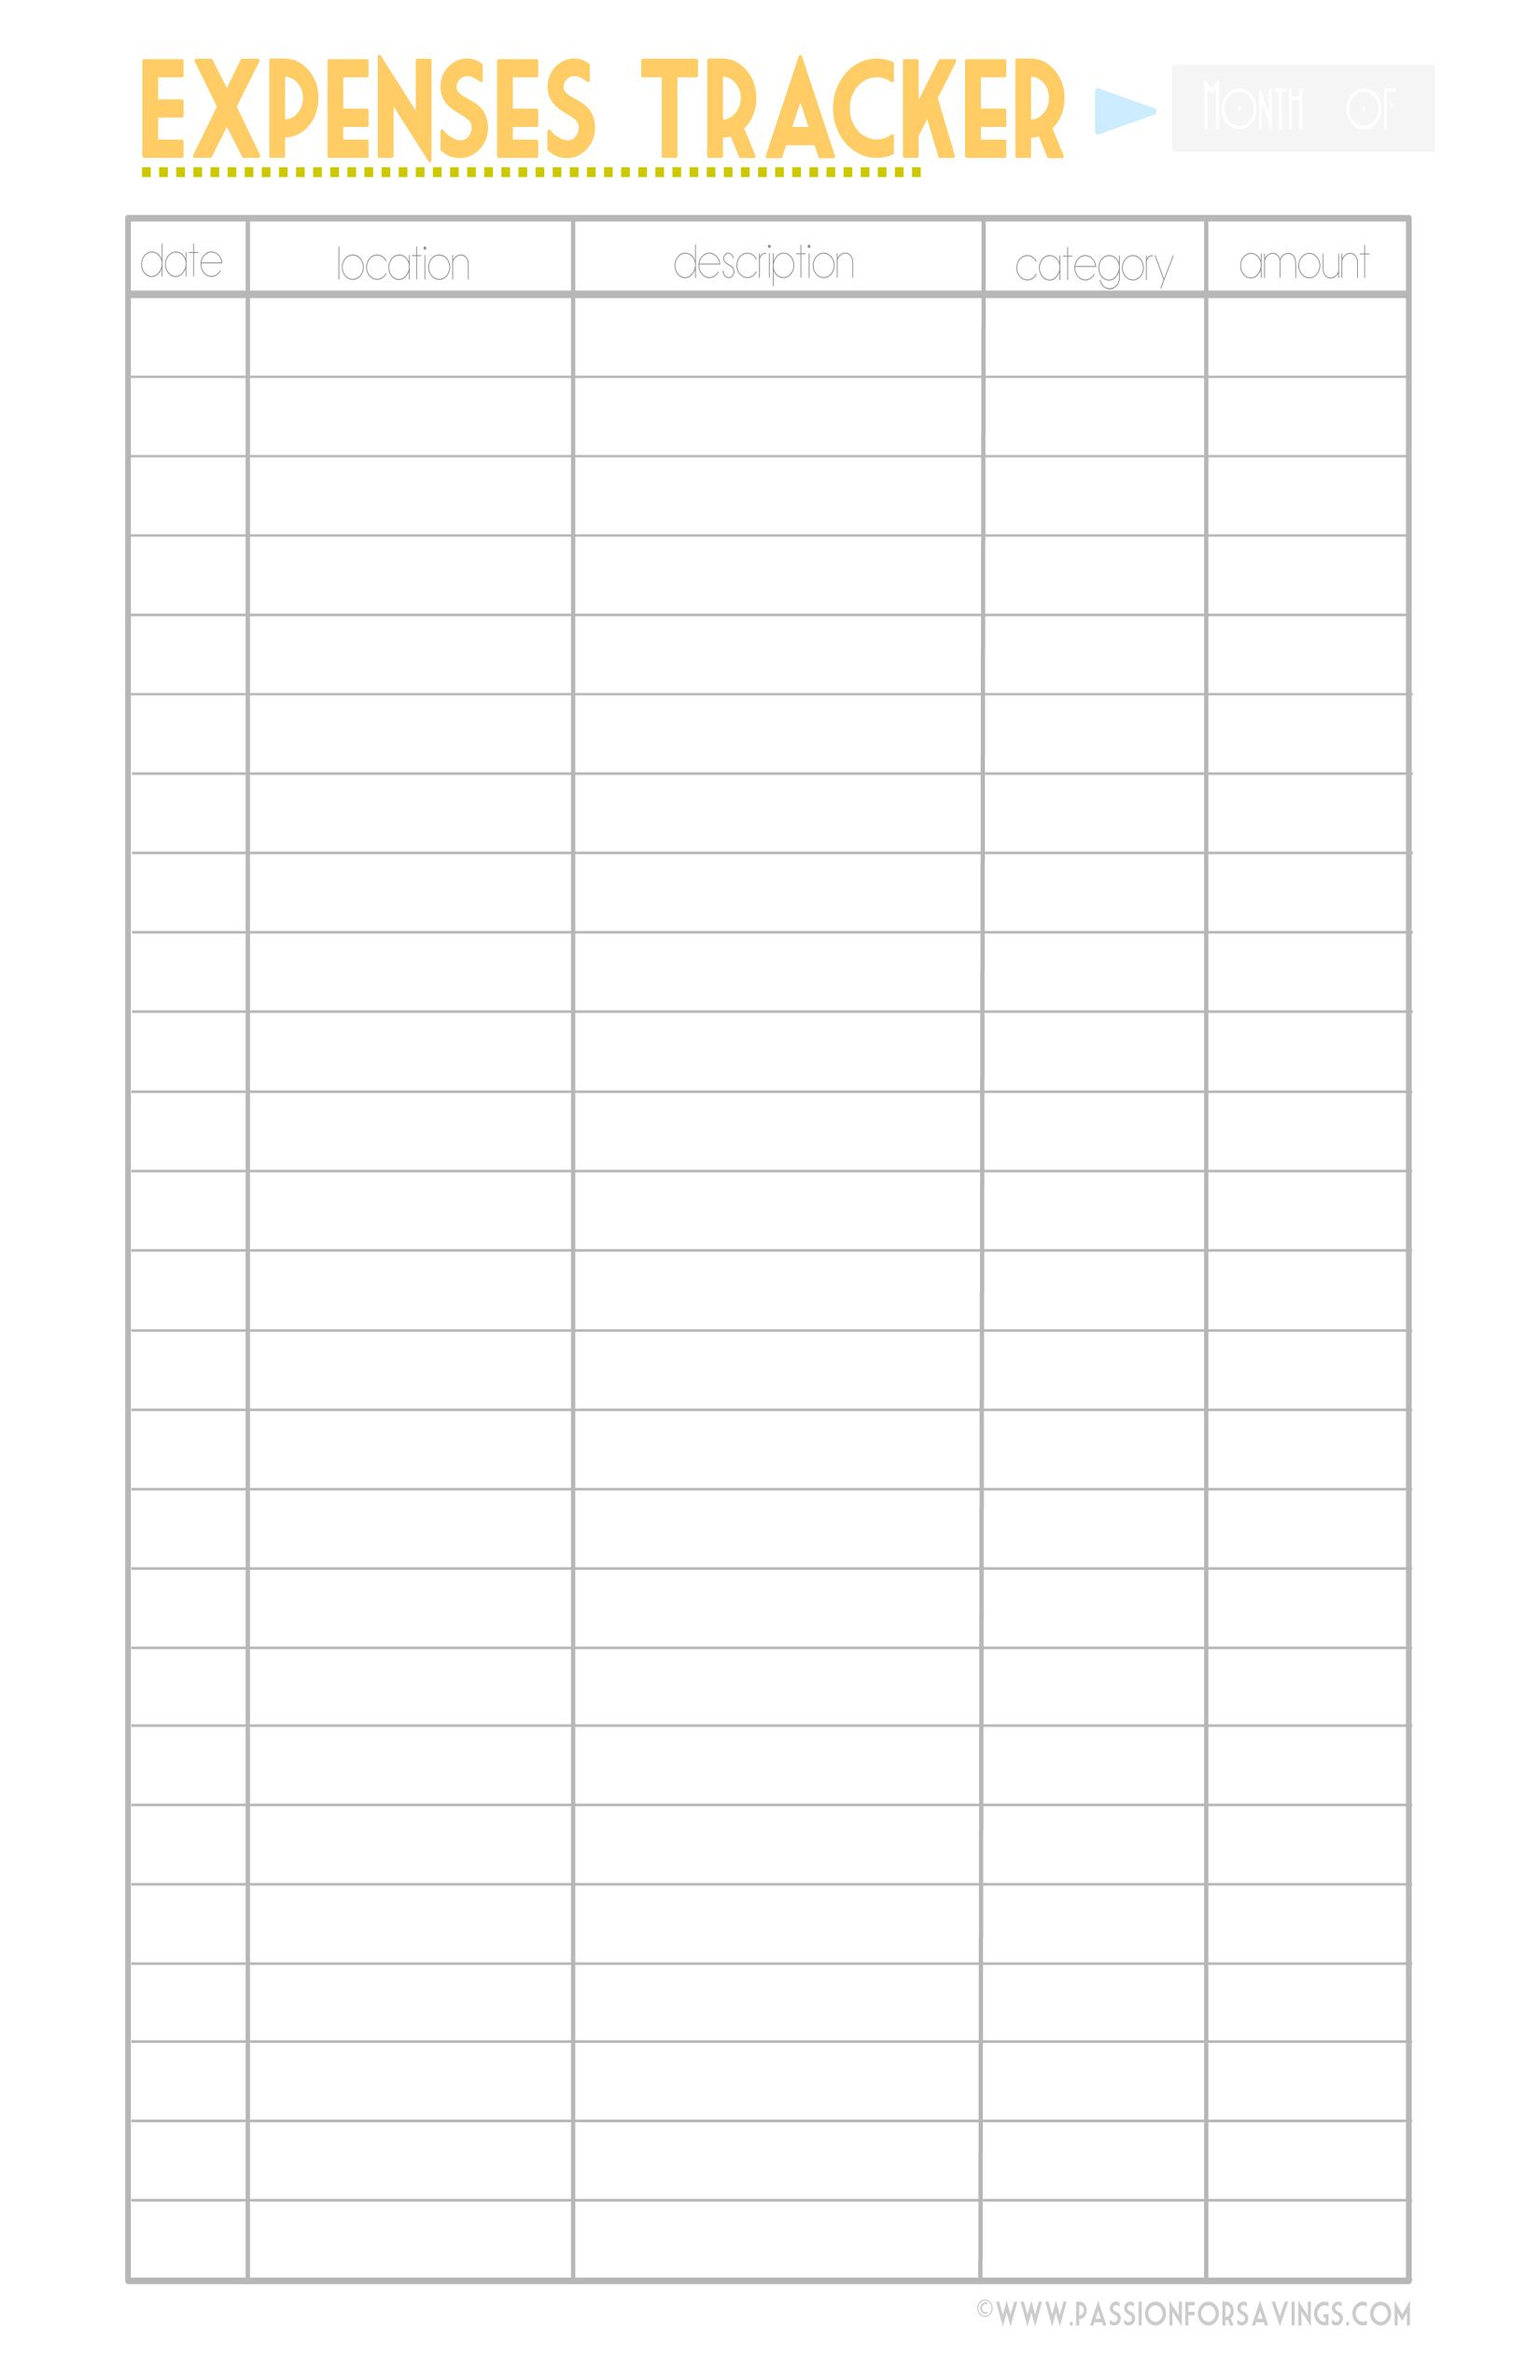 image about Spending Log Printable called funds printable  Magazine ideas♡ Price tracker